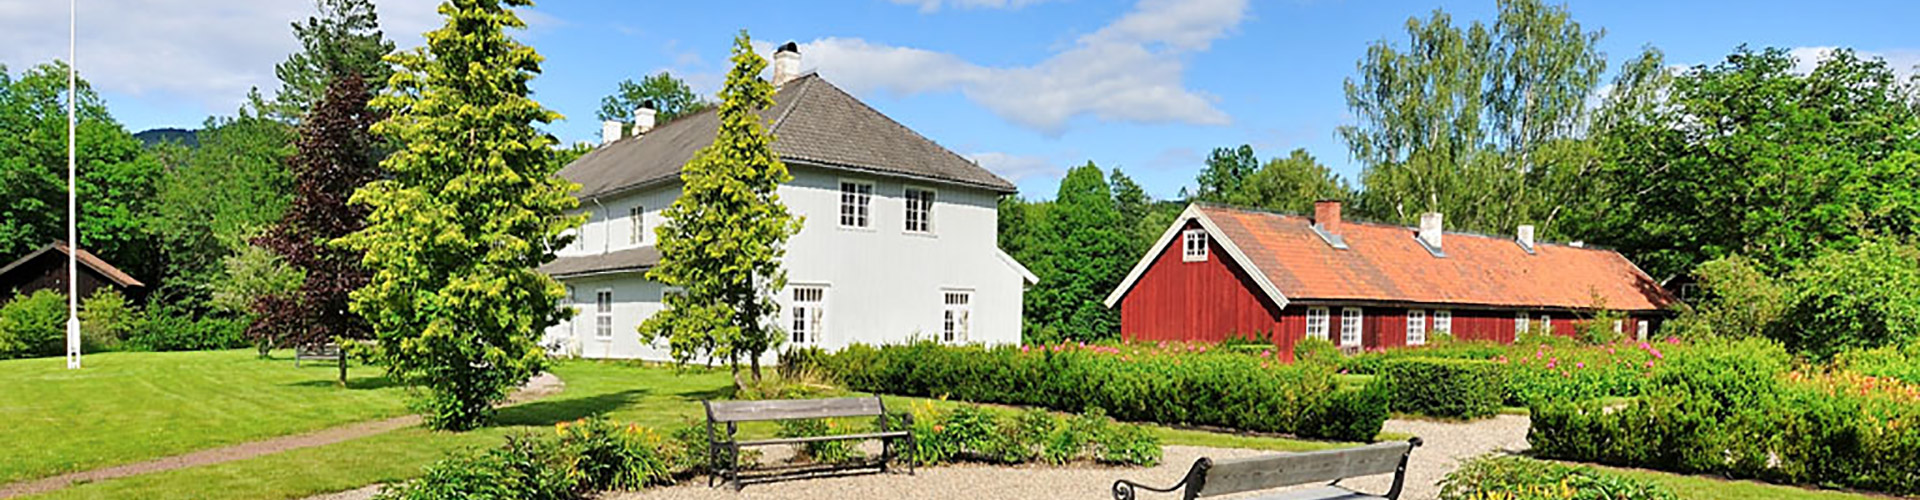 Eidsfos-Hovedgard-fra-Haven-stor